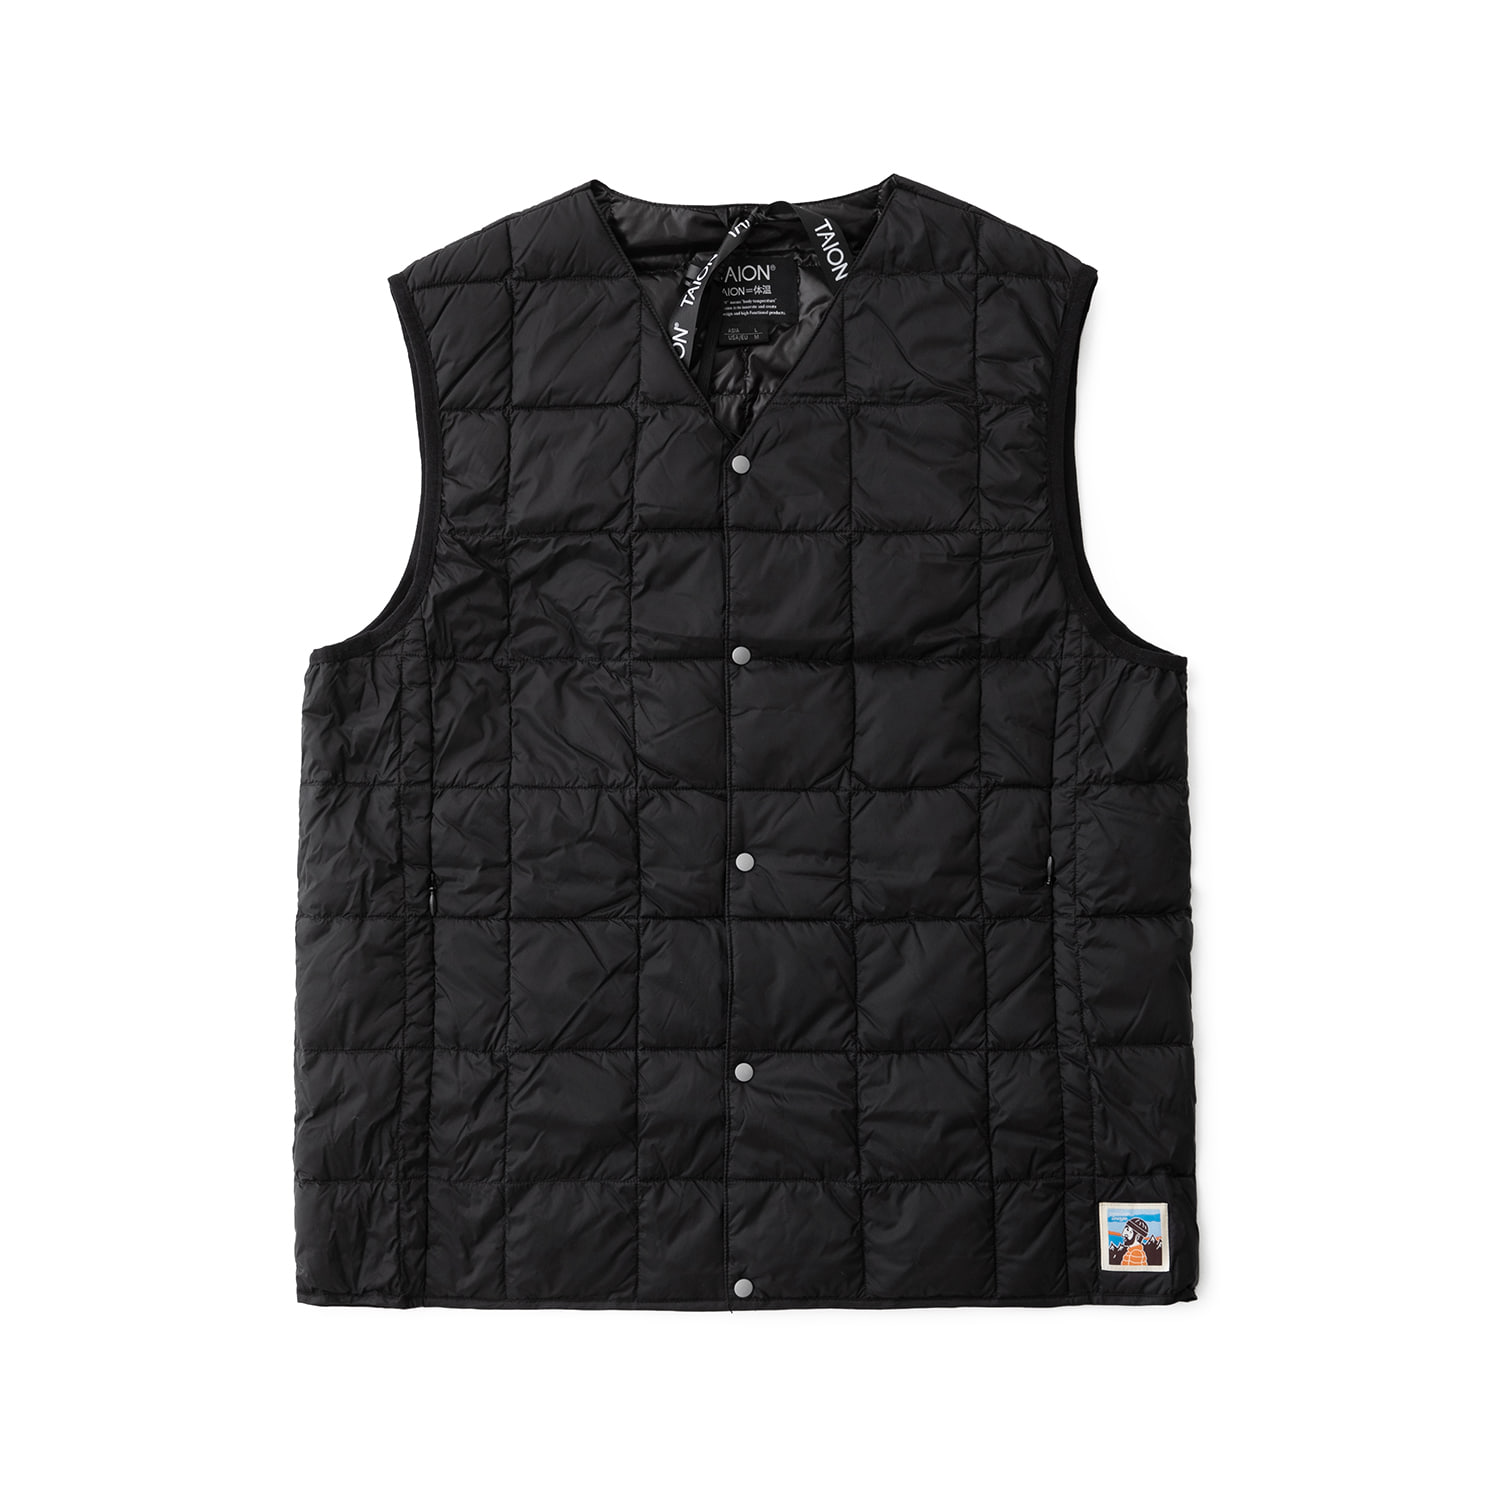 TAION X ANOTHER OFFICE PACKABLE DOWN VEST (BLACK)